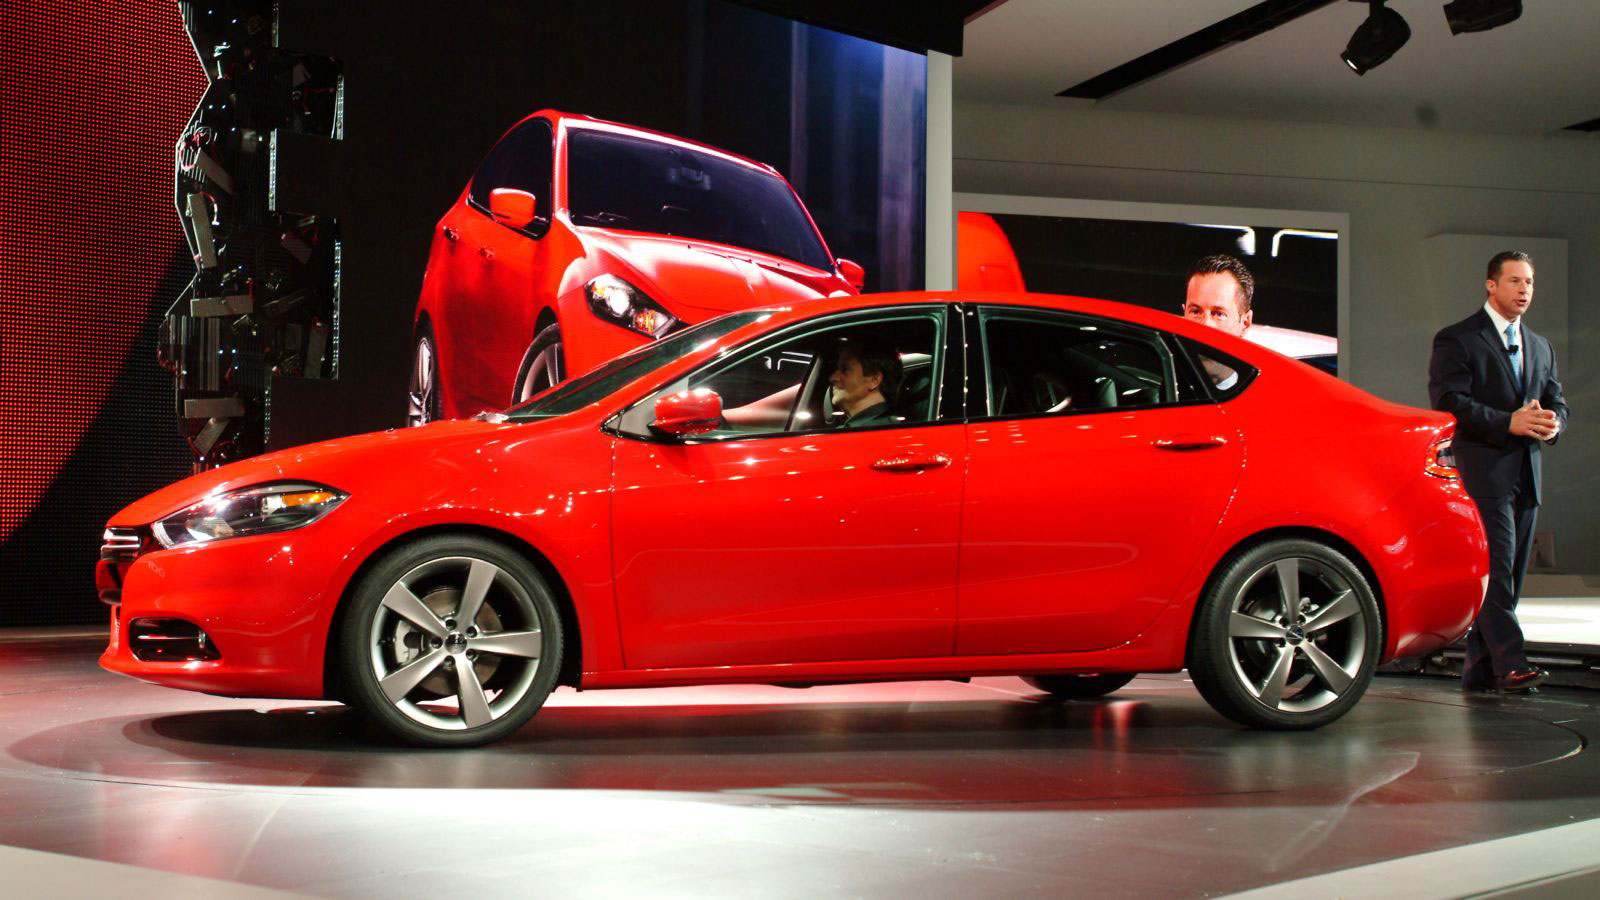 The all-new Dodge Dart, unveiled Monday at the 2012 North American